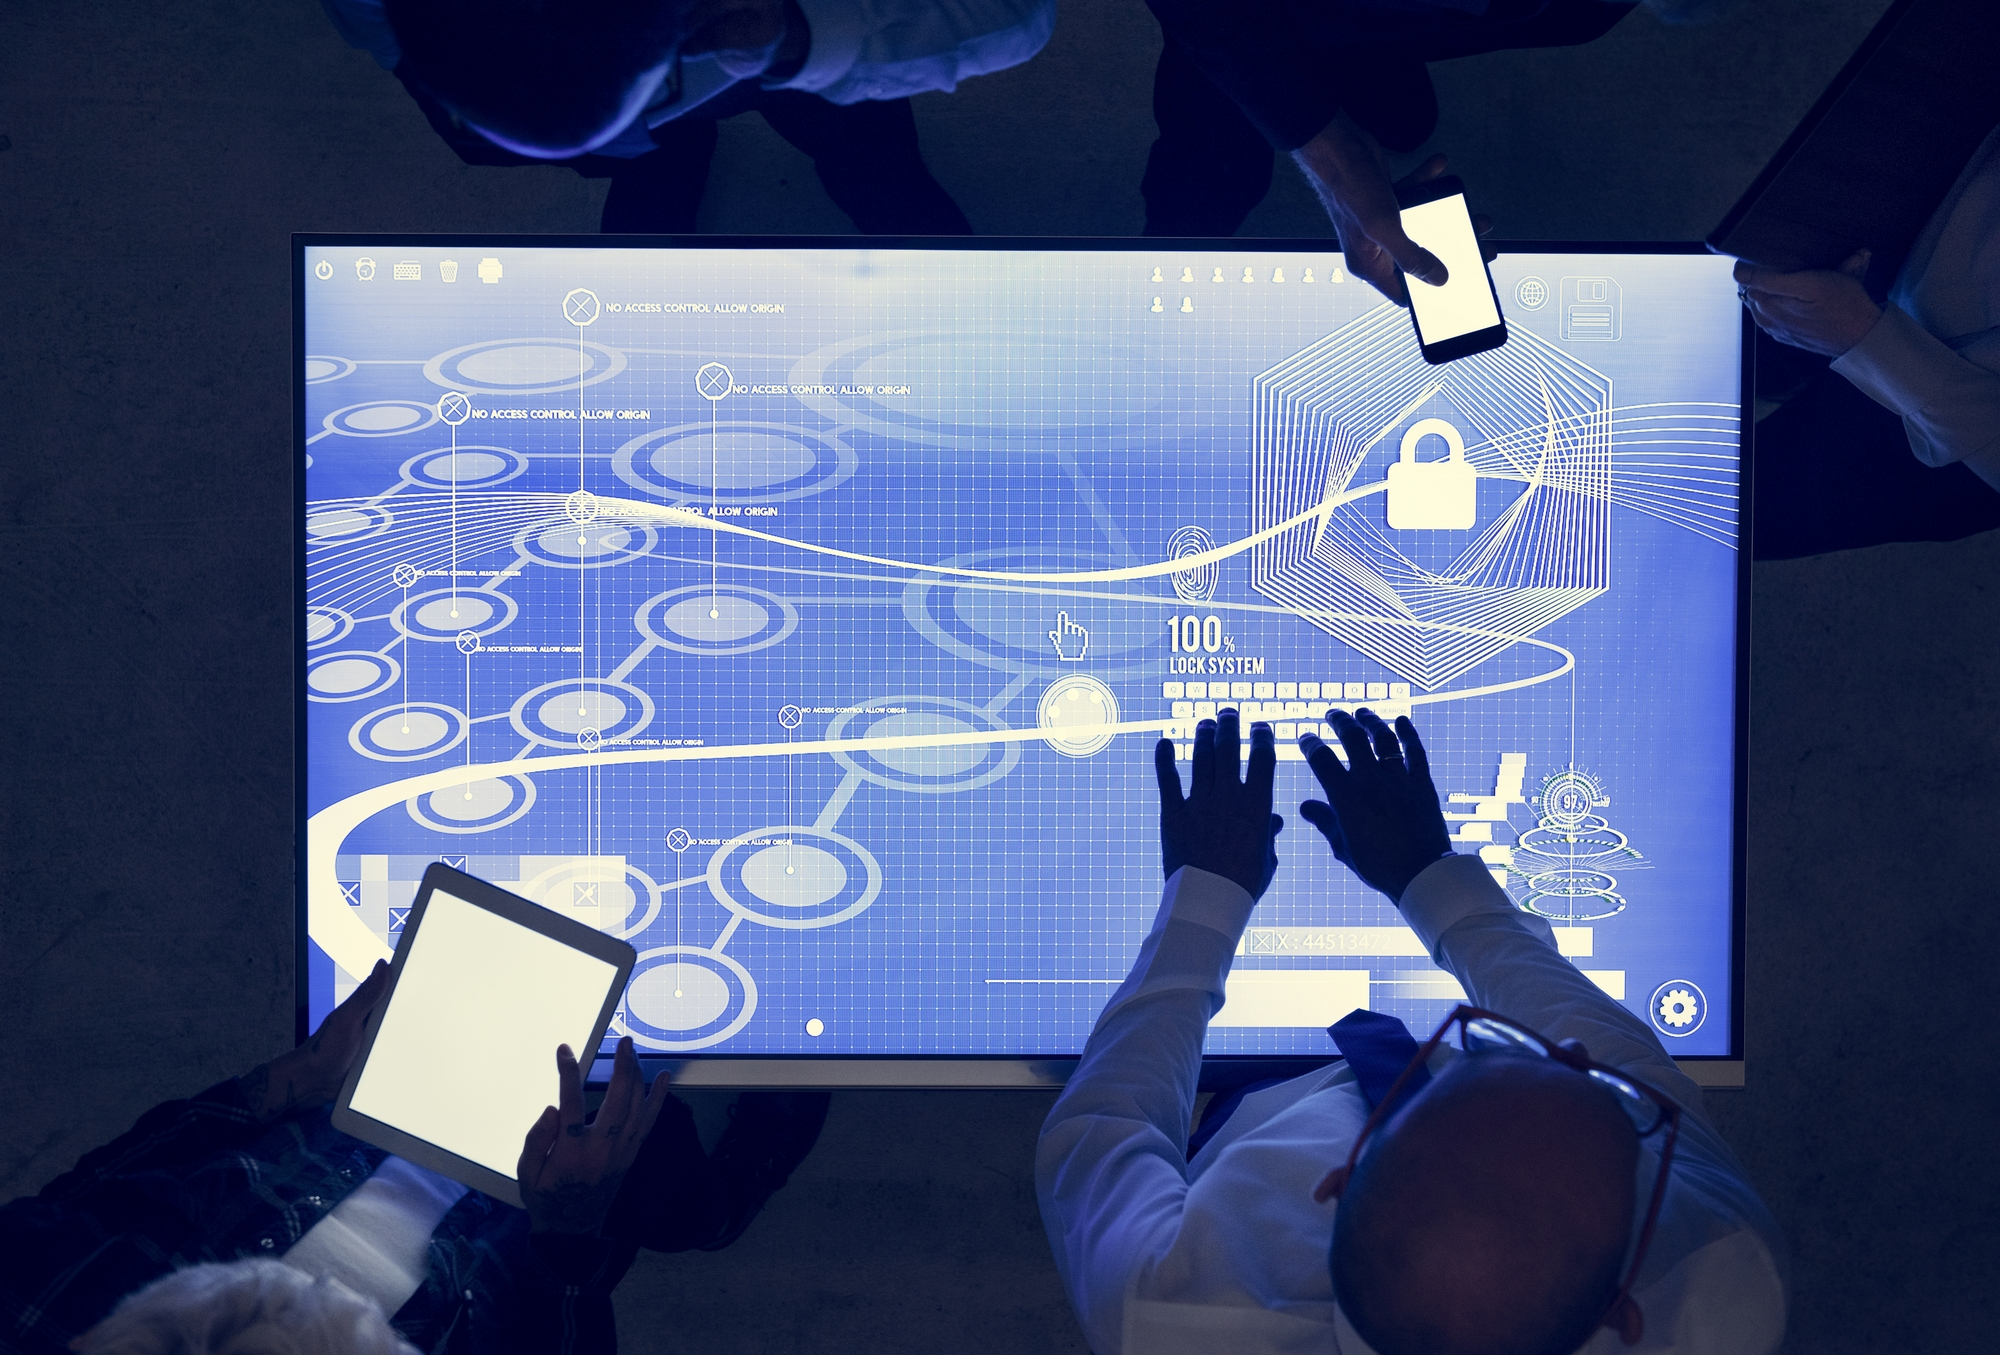 people-in-a-technology-cyber-space-meeting-pn2arvg.jpg